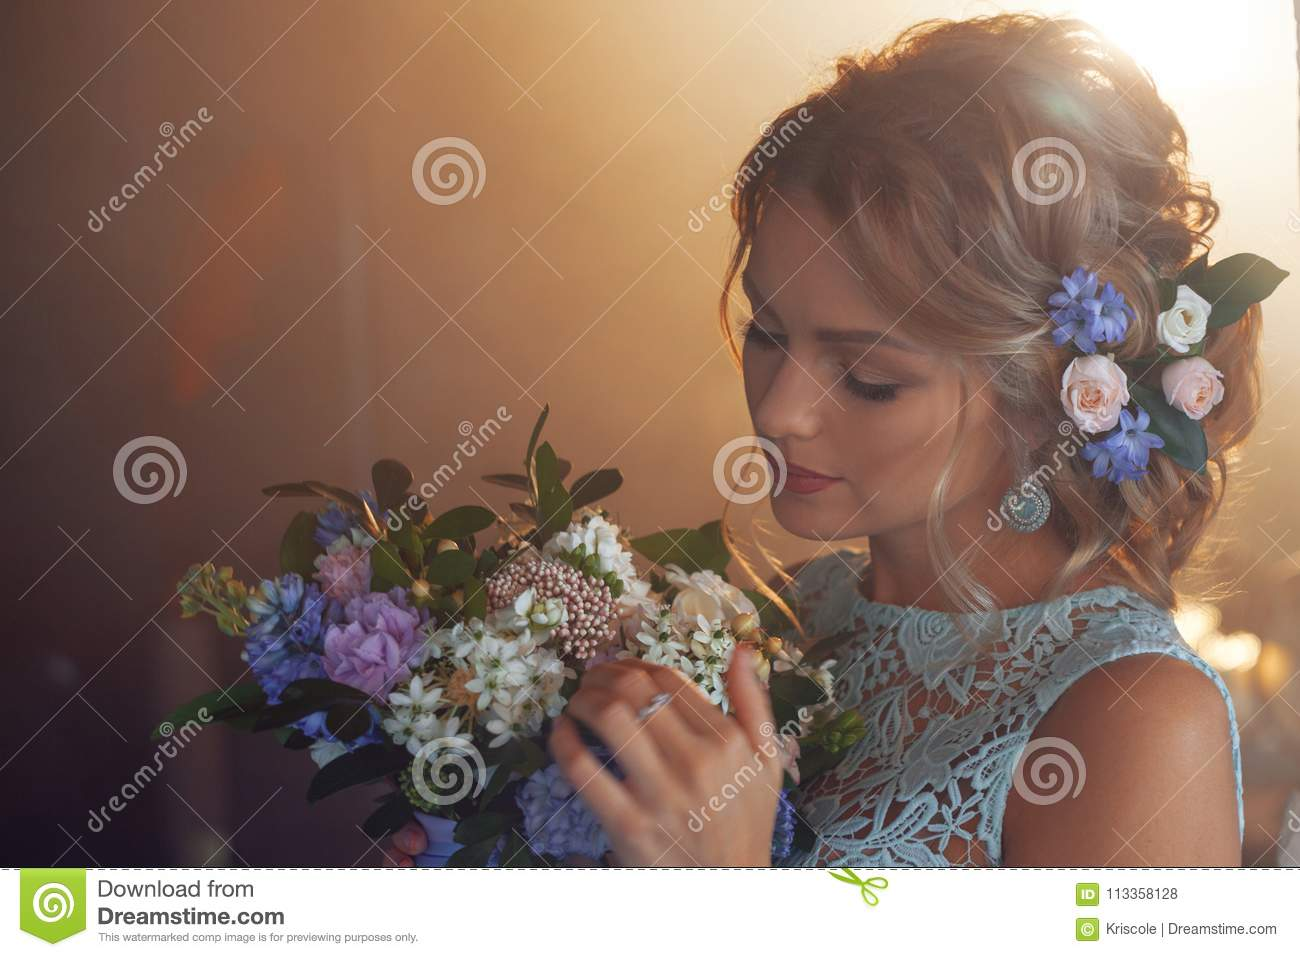 Young beautiful woman in wedding dress with bouquet of flowers young beautiful woman in wedding dress with bouquet of flowers wedding hairstyle flowers in hair bride in loft interior izmirmasajfo